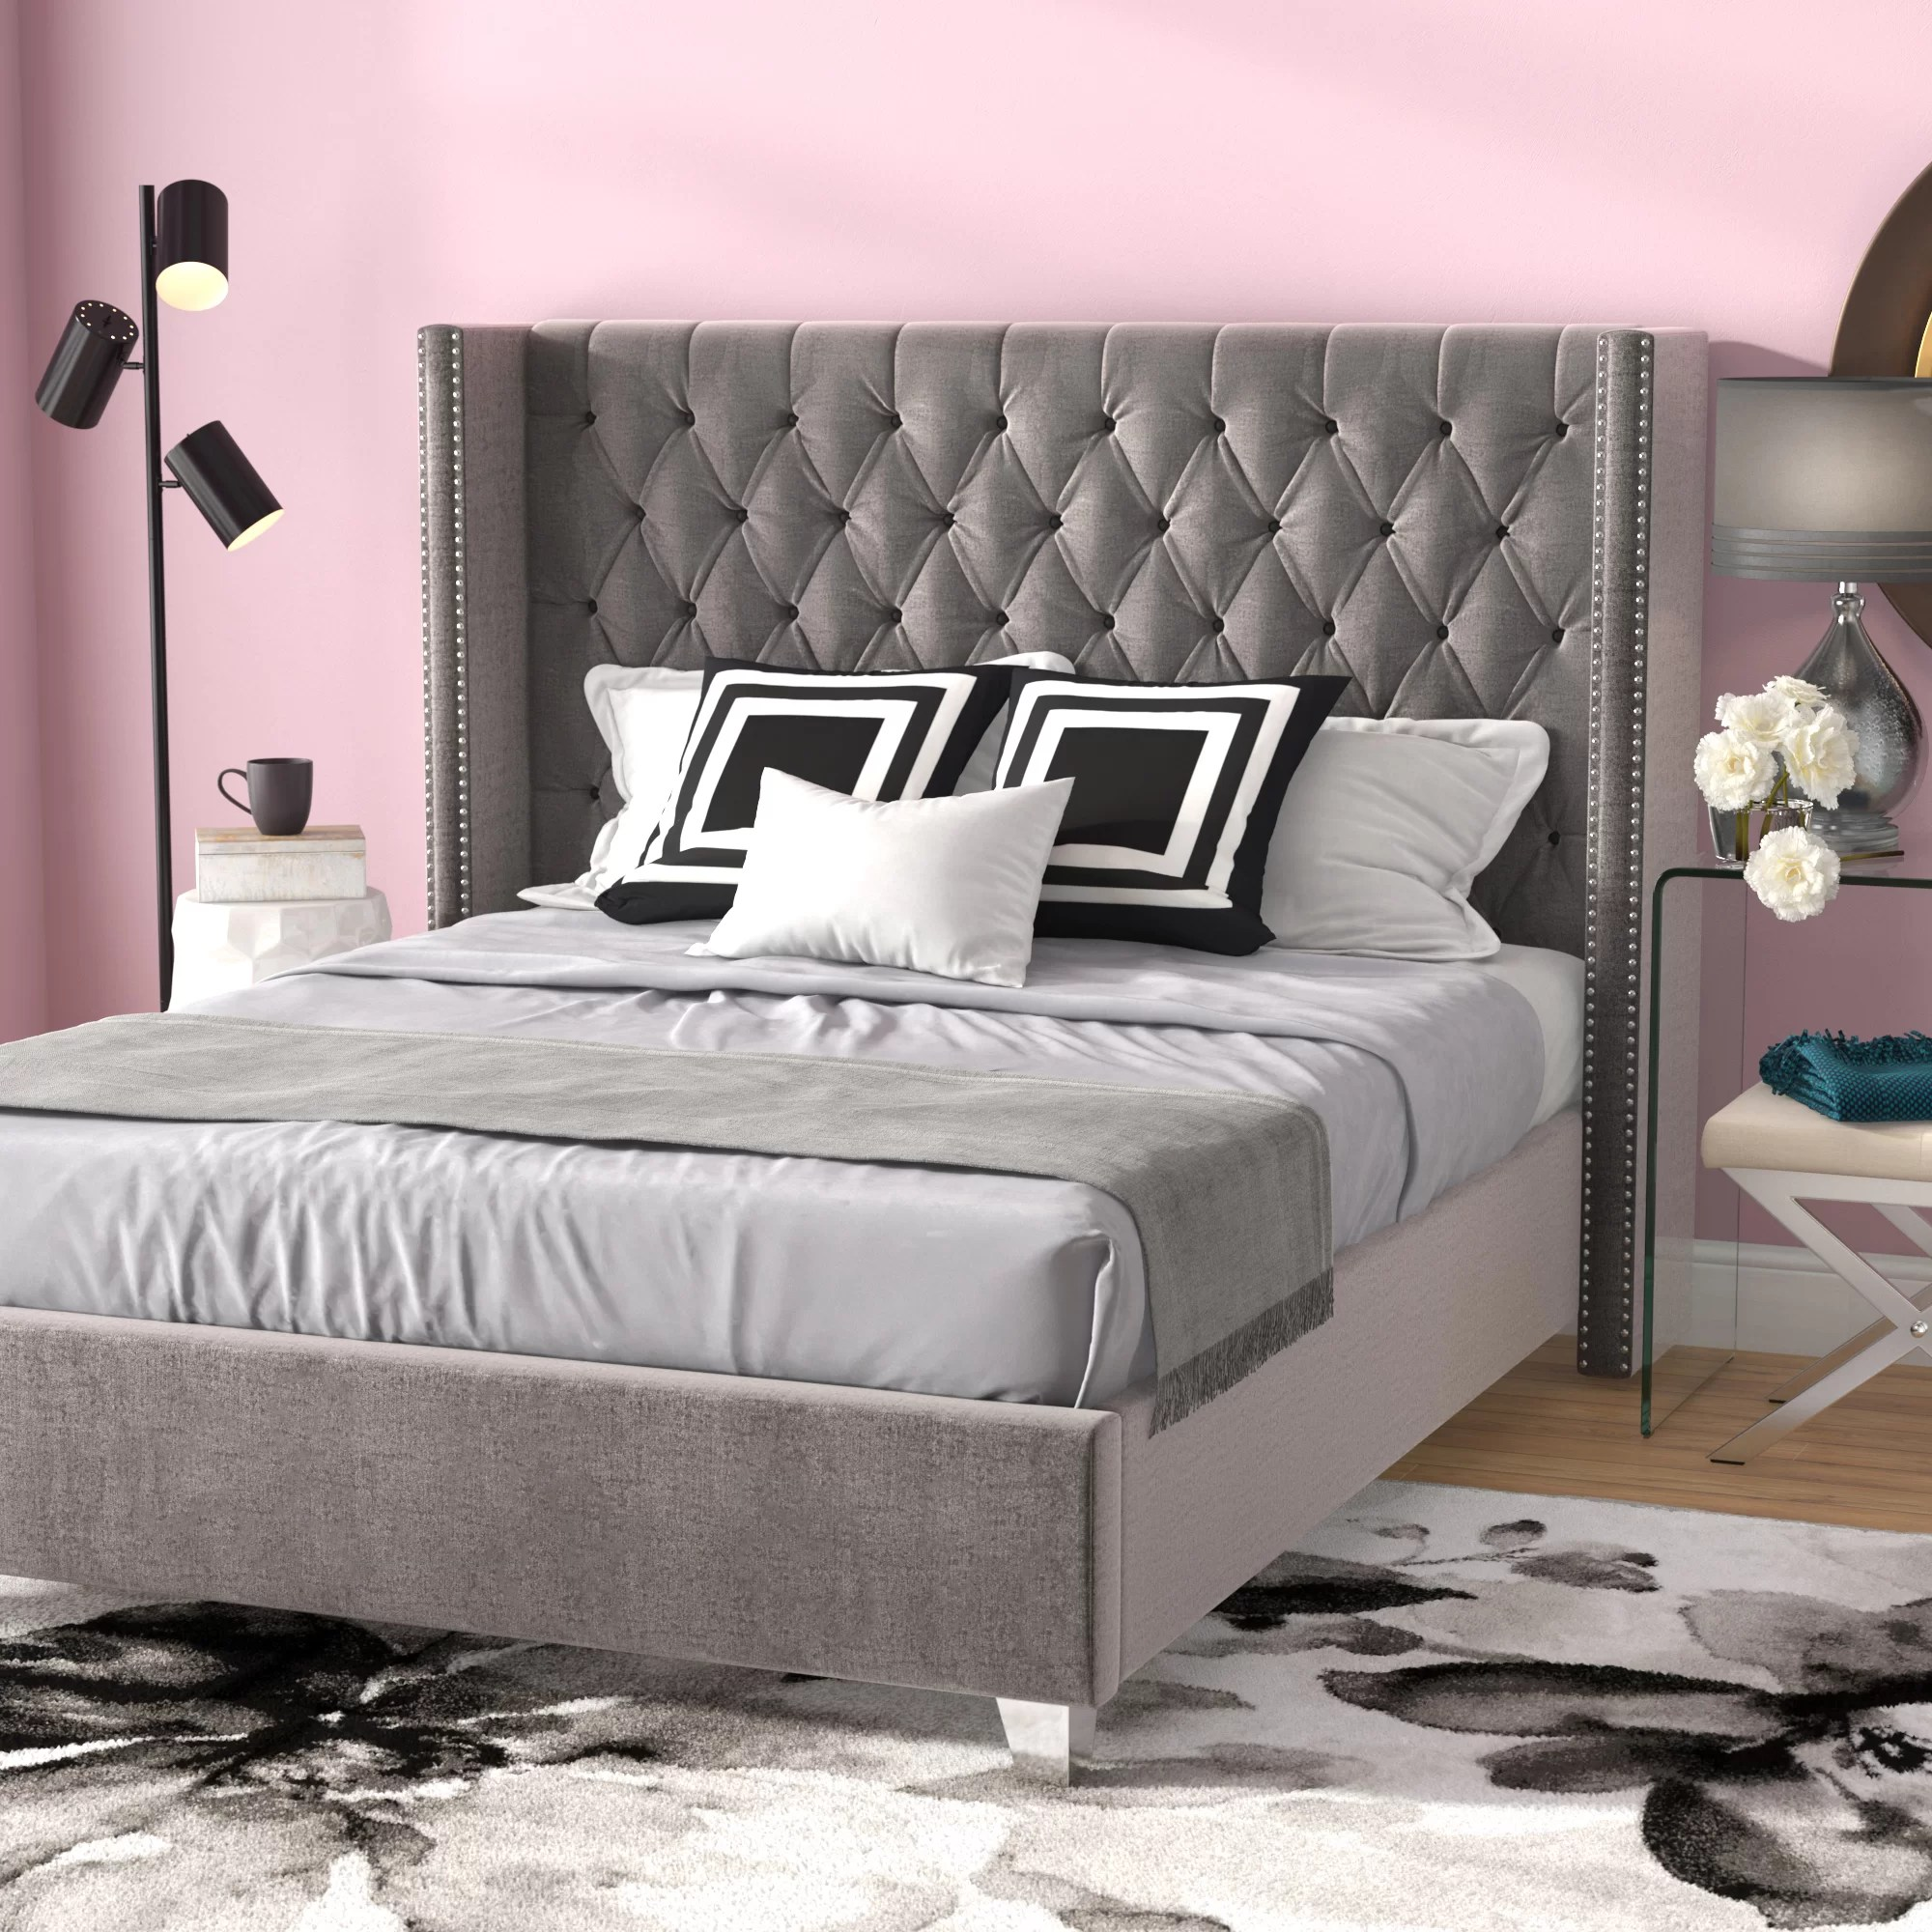 Willa Arlo Interiors Jennie Tufted Upholstered Low Profile Platform Bed Reviews